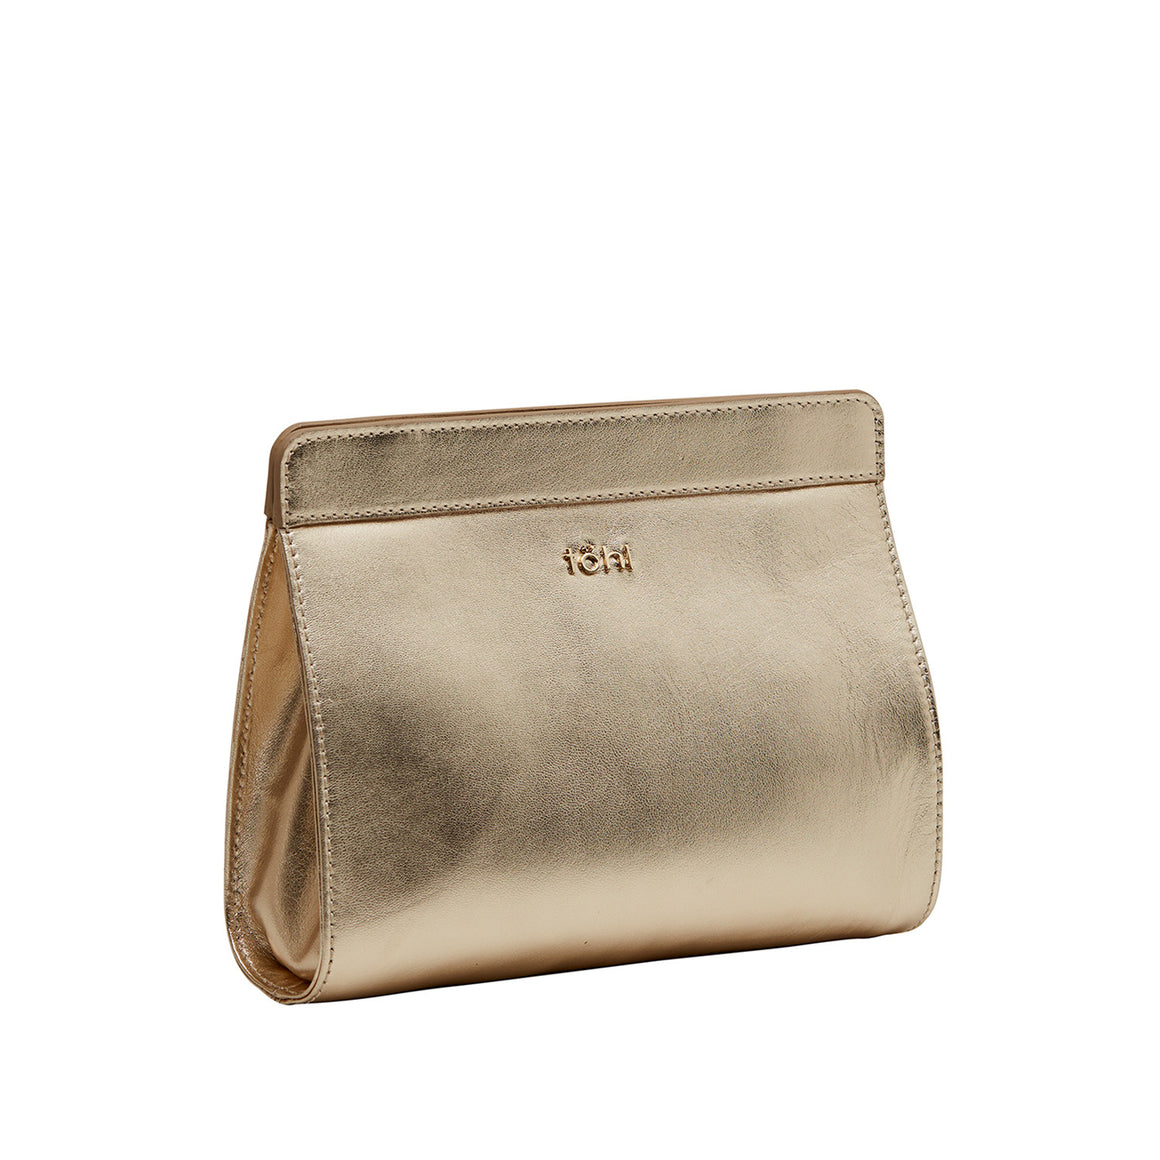 CH 0004 - TOHL CHARLTON WOMEN'S GRIP CLUTCH - GOLD